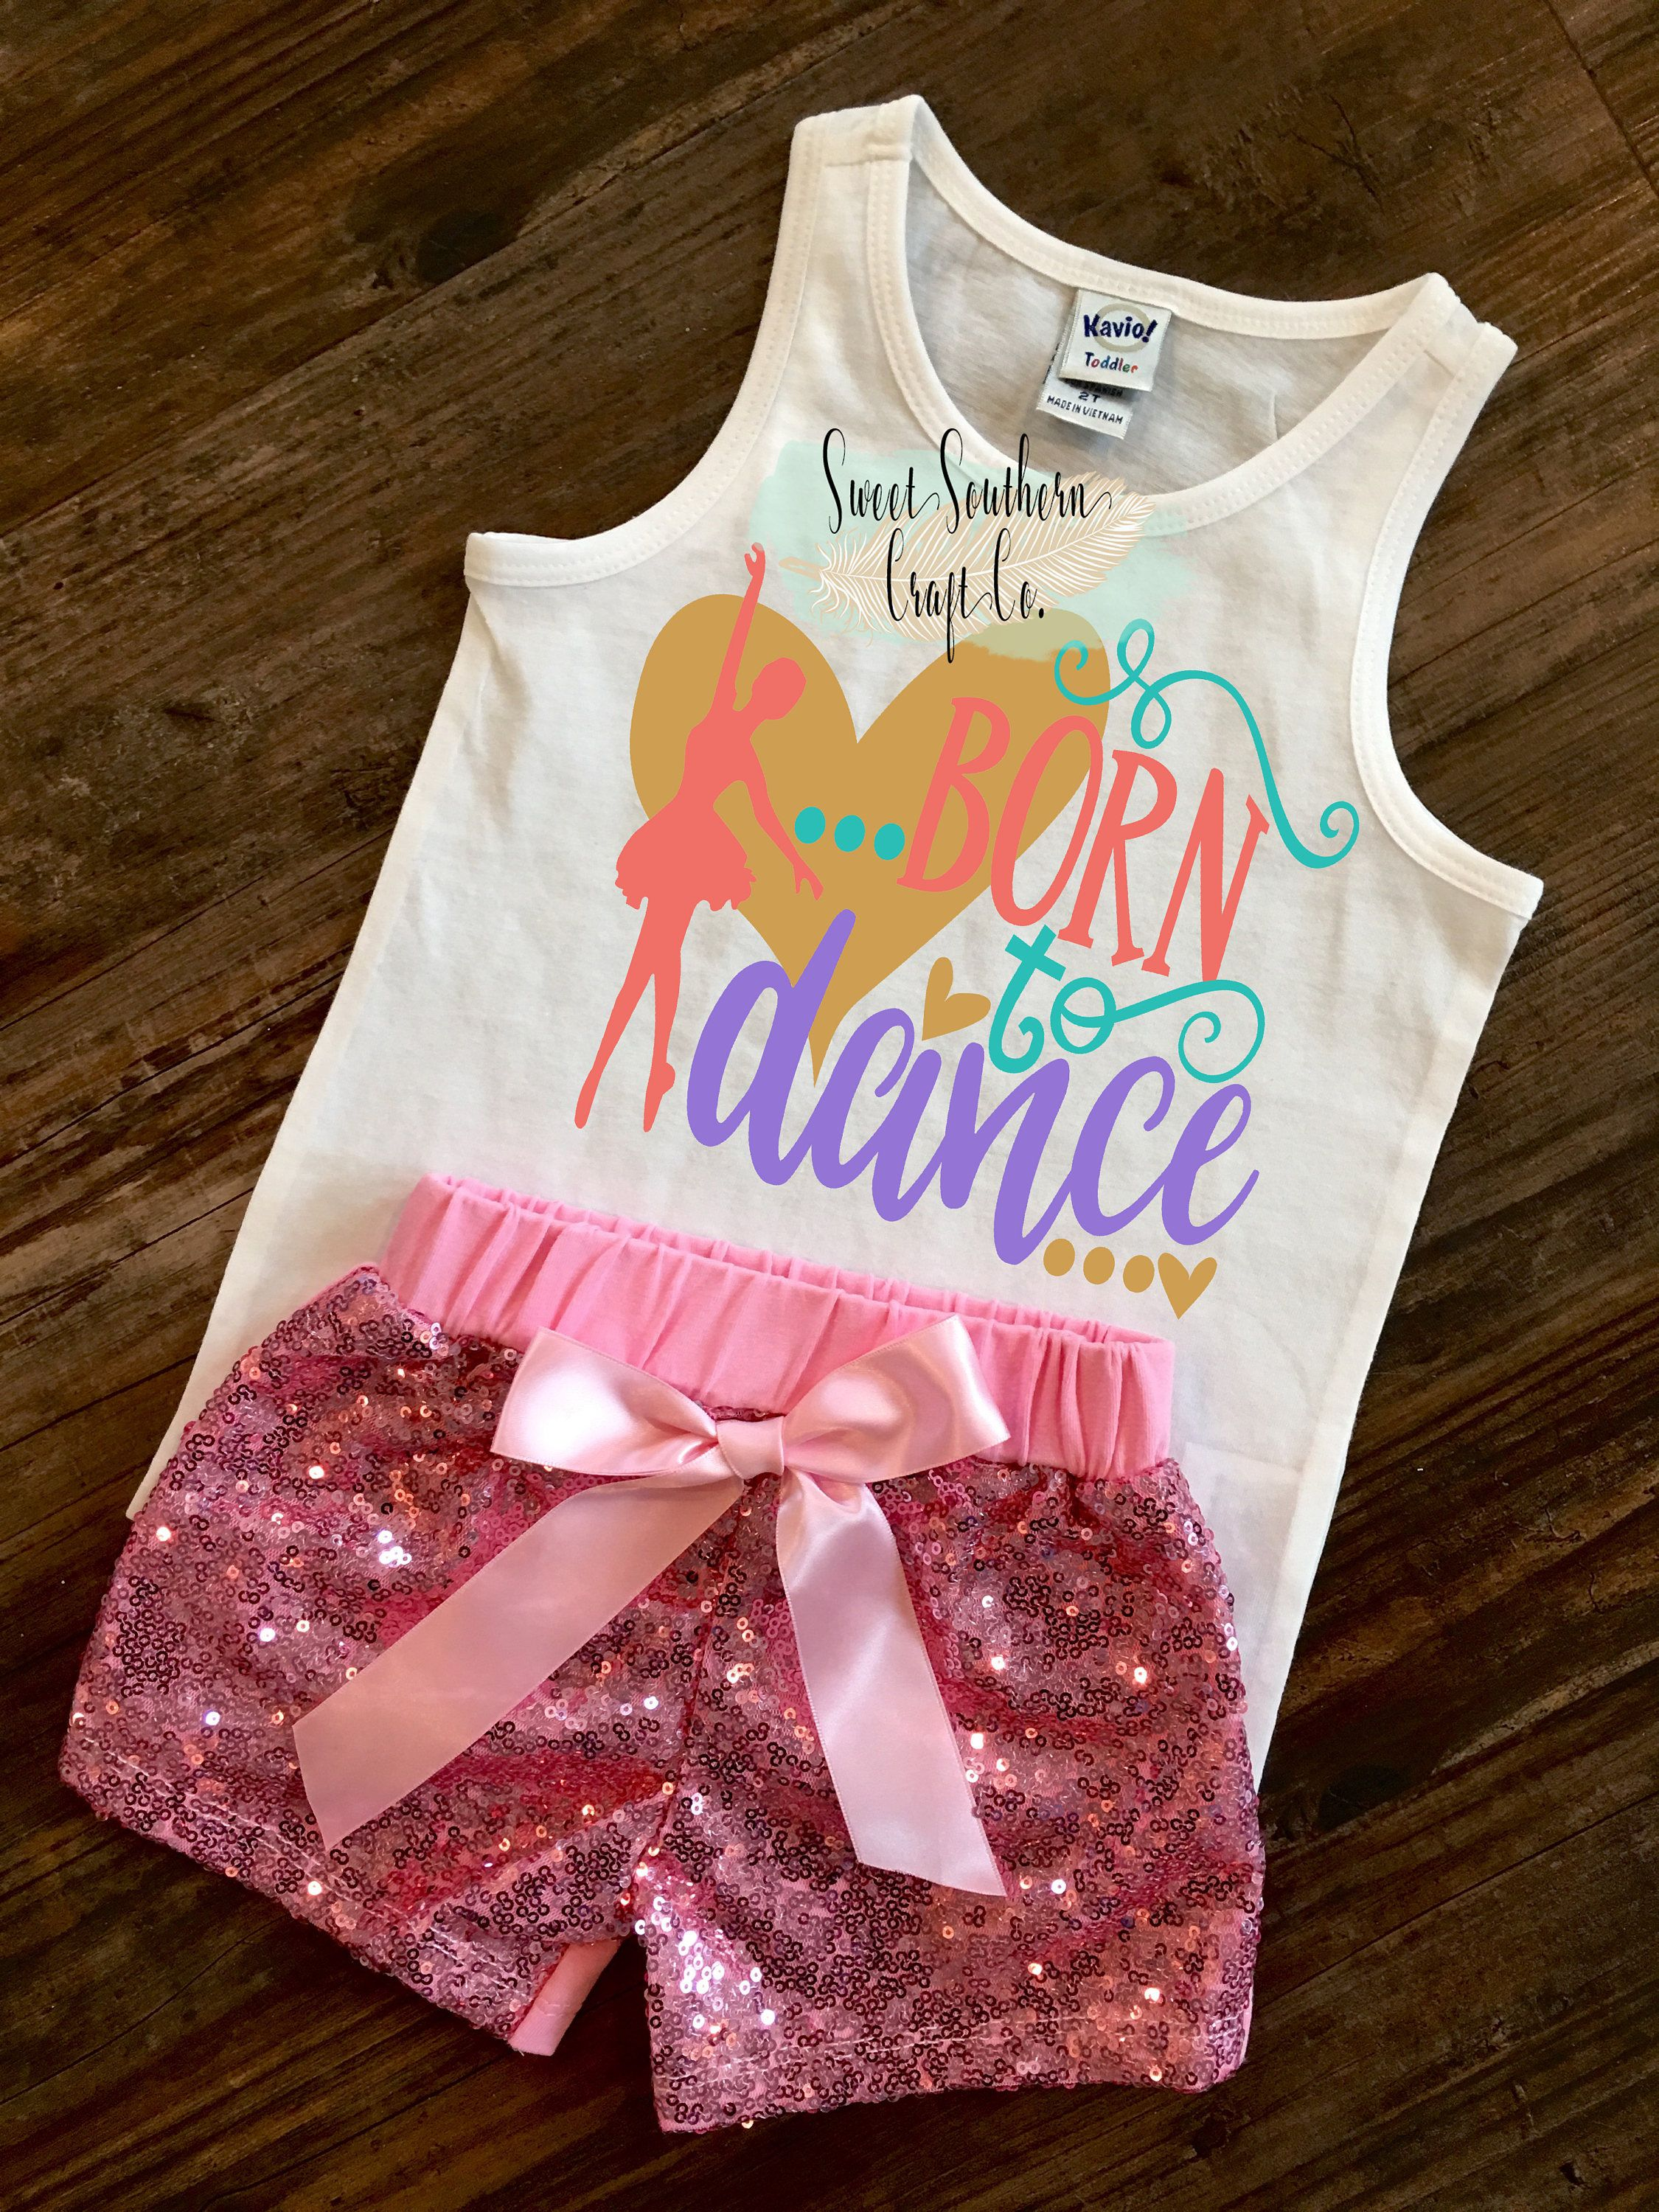 FREE SHIPPING***Born To Dance Toddler Tank Top,Dancer Shirt,Ballet,Jazz,Point,Toddler Racerback,Girl Shirt,Girl Tank,Dance Recital,Dancer by SweetSouthernCraftCo on Etsy